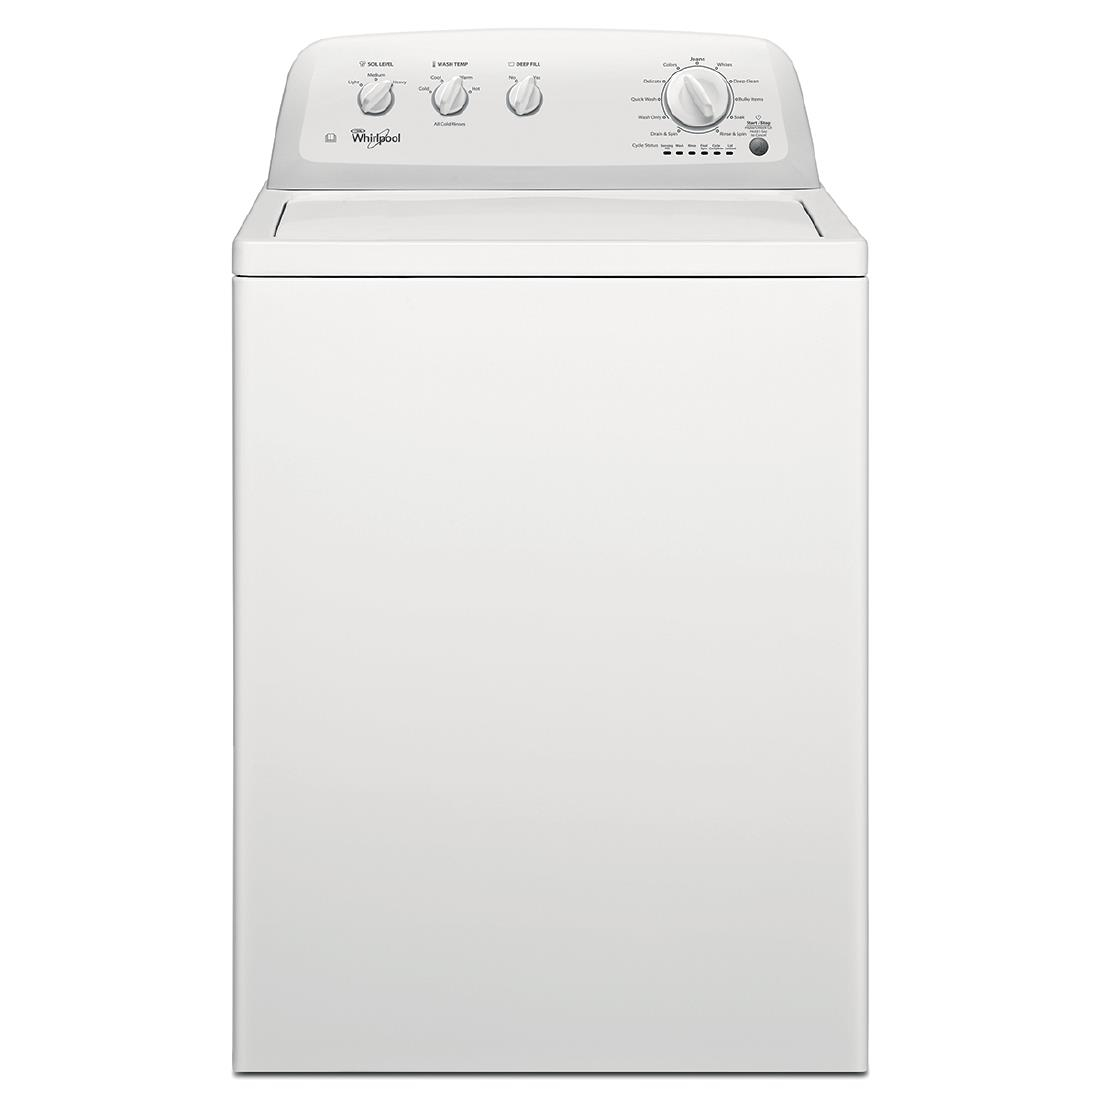 Whirlpool Commercial Washing Machine Wiring Diagram on